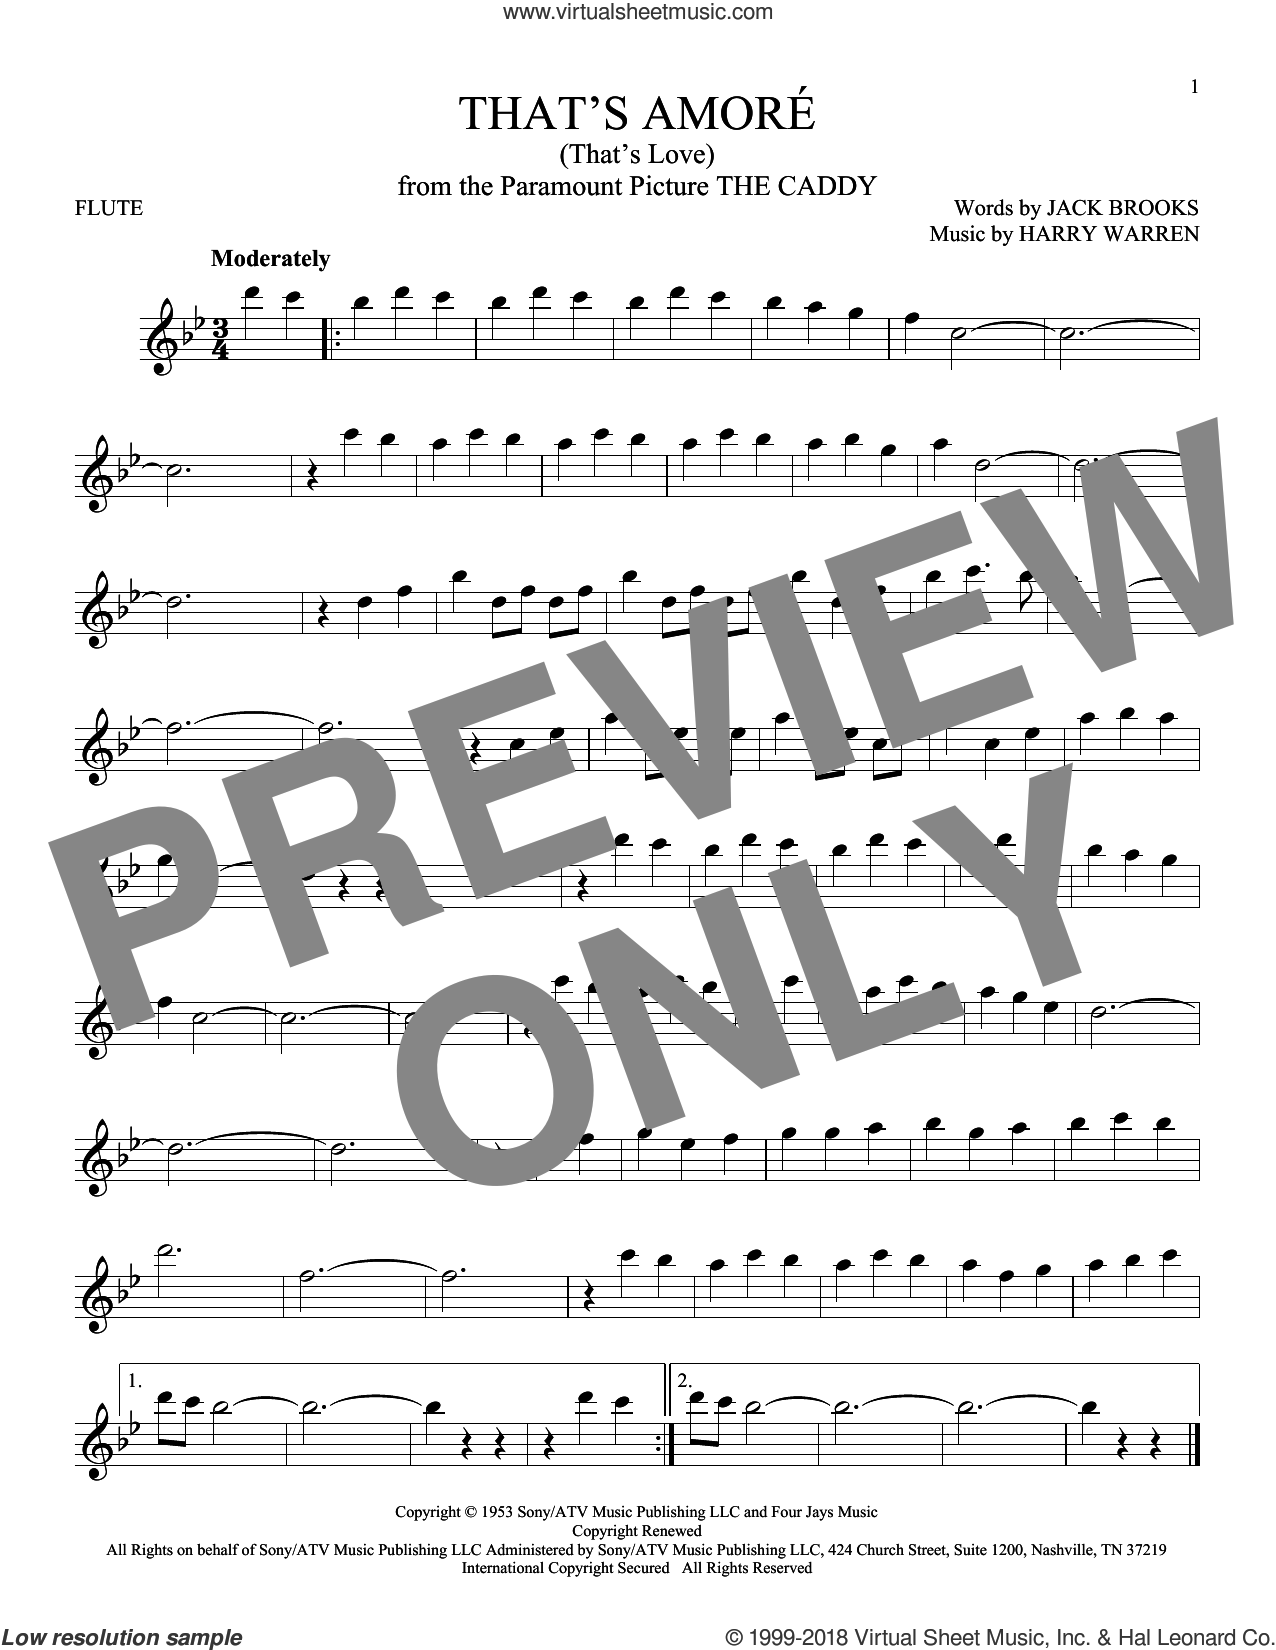 That's Amore (That's Love) sheet music for flute solo by Harry Warren and Jack Brooks, intermediate skill level